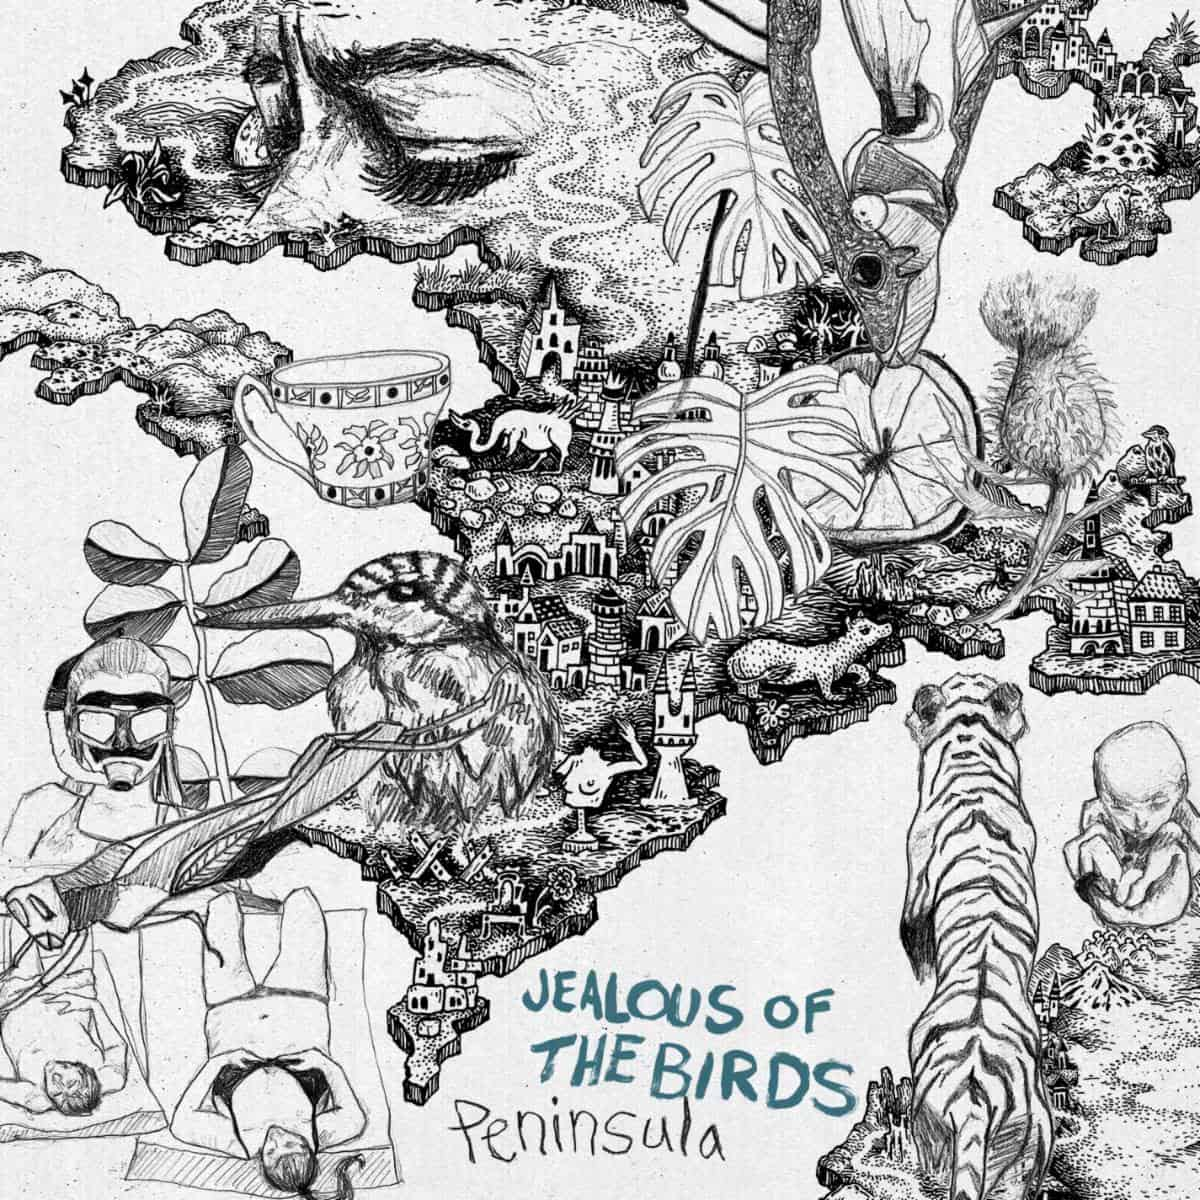 Jealous of the Birds Peninsula Album Art